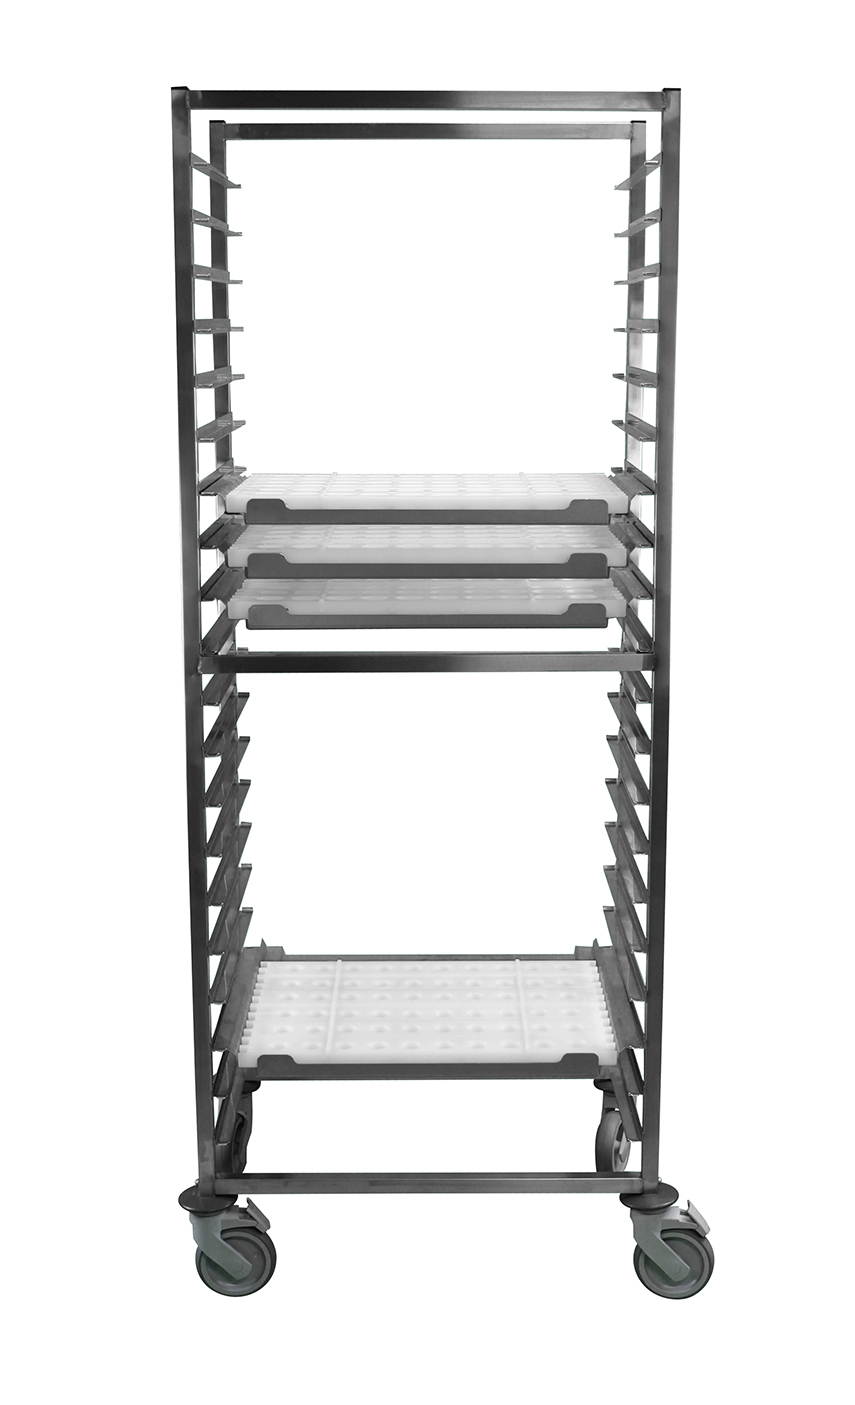 mobile rack trays P1000 recht